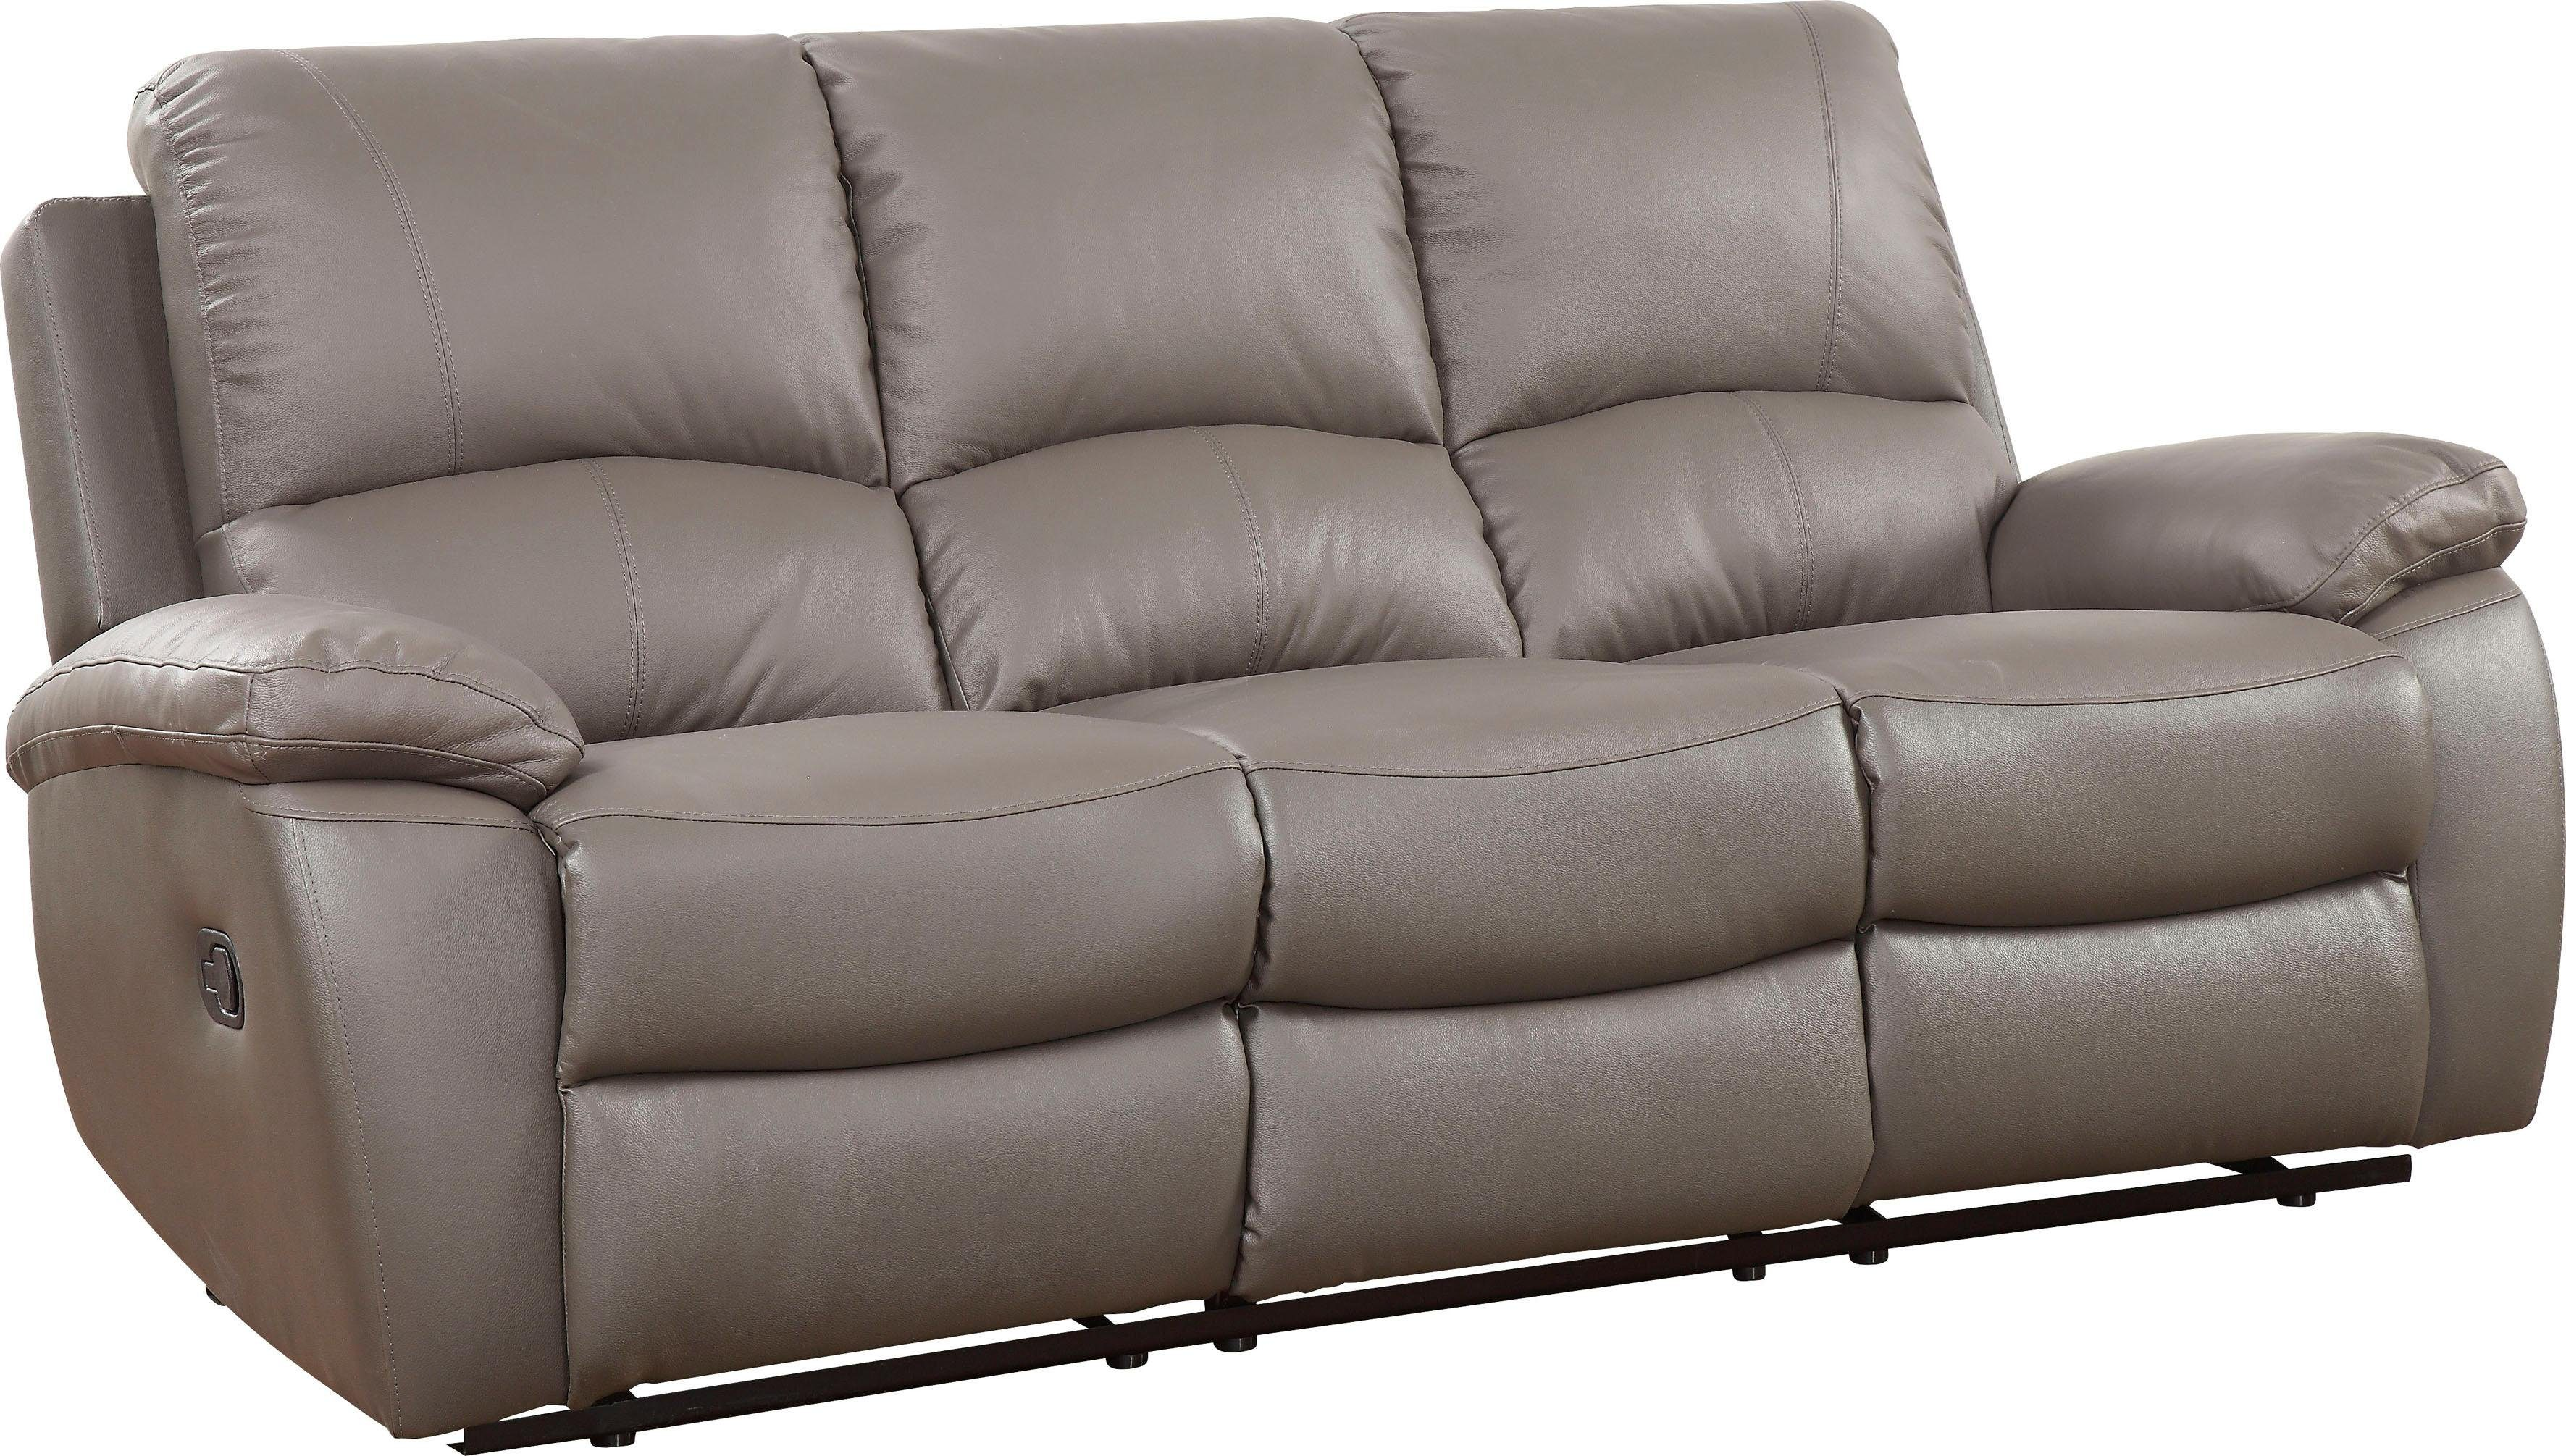 Ecksofa Grau Otto Otto Sale Atlantic Home Collection Sofa Grau 04260471535203